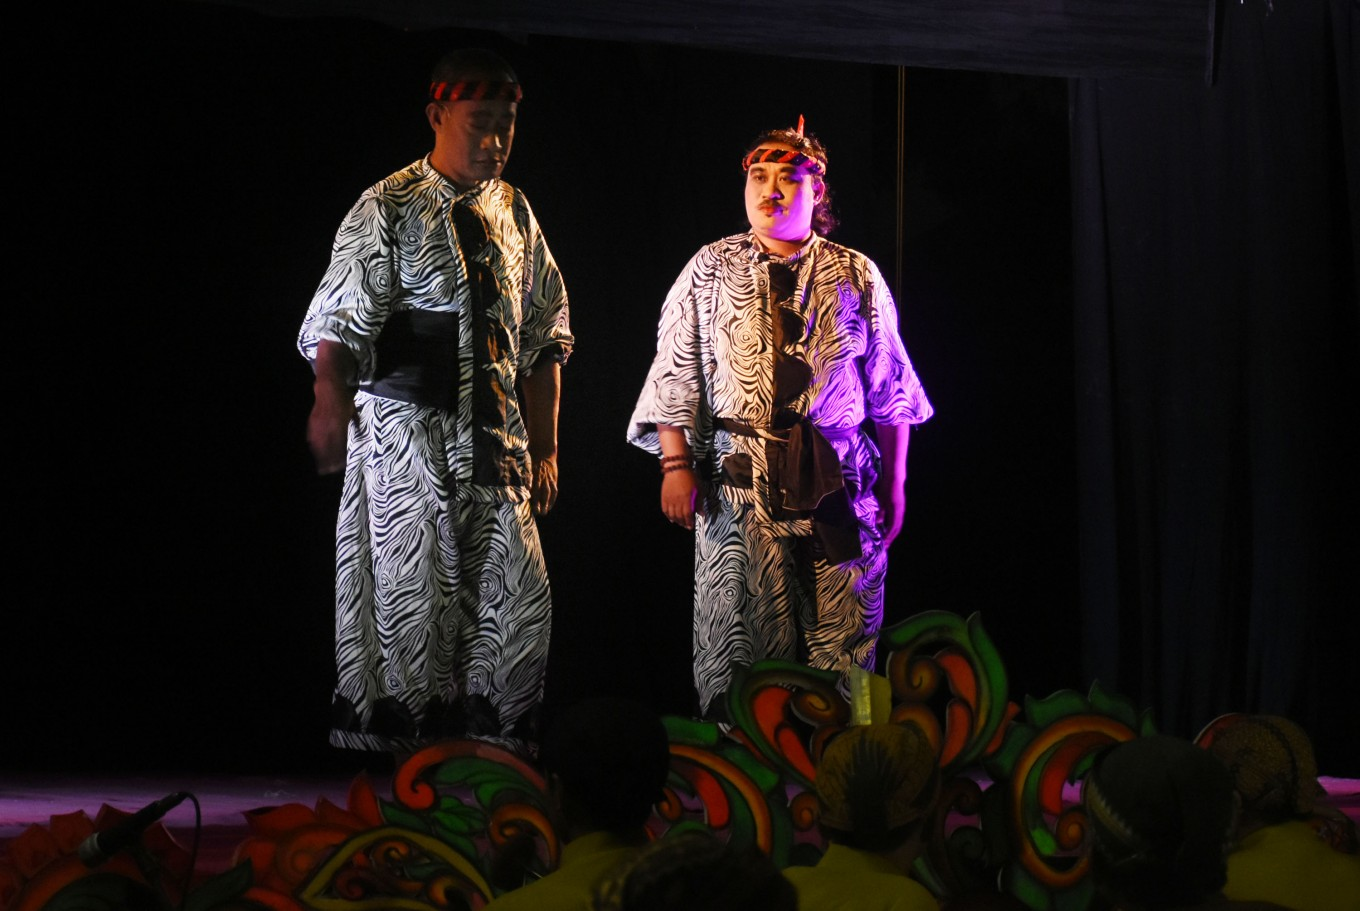 Two of the 14 wayang orang artists from the Malang theatrical community tell the tale of sibling rivalry between brothers Karna and Arjuna, the sons of Dewi Kunti on Saturday in Malang, East Java.